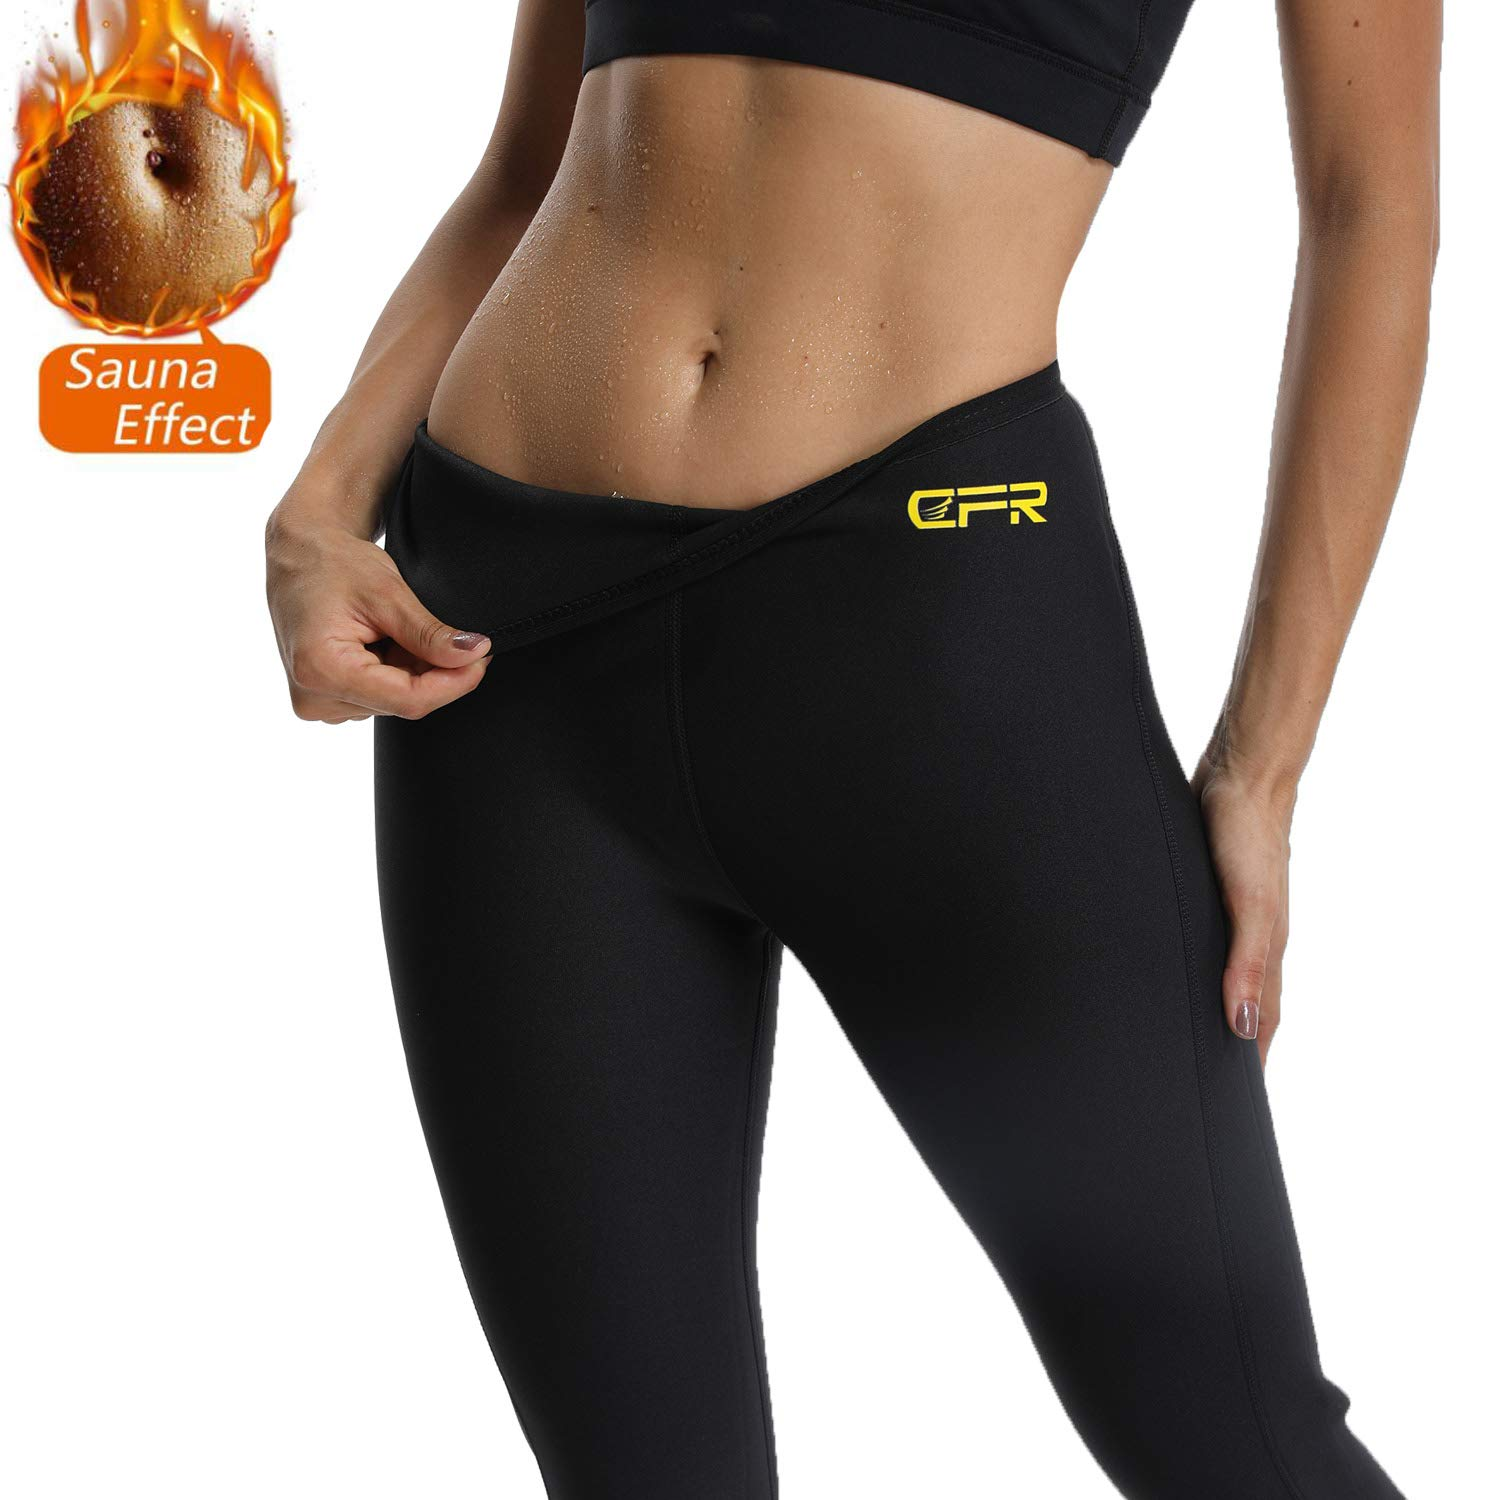 93a5f66f00 Amazon.com : FITTOO Women Plus Size Neoprene Thermo Sweat Sauna Suits  Weight Loss Hot Yoga Pants Fat Body Burner : Sports & Outdoors